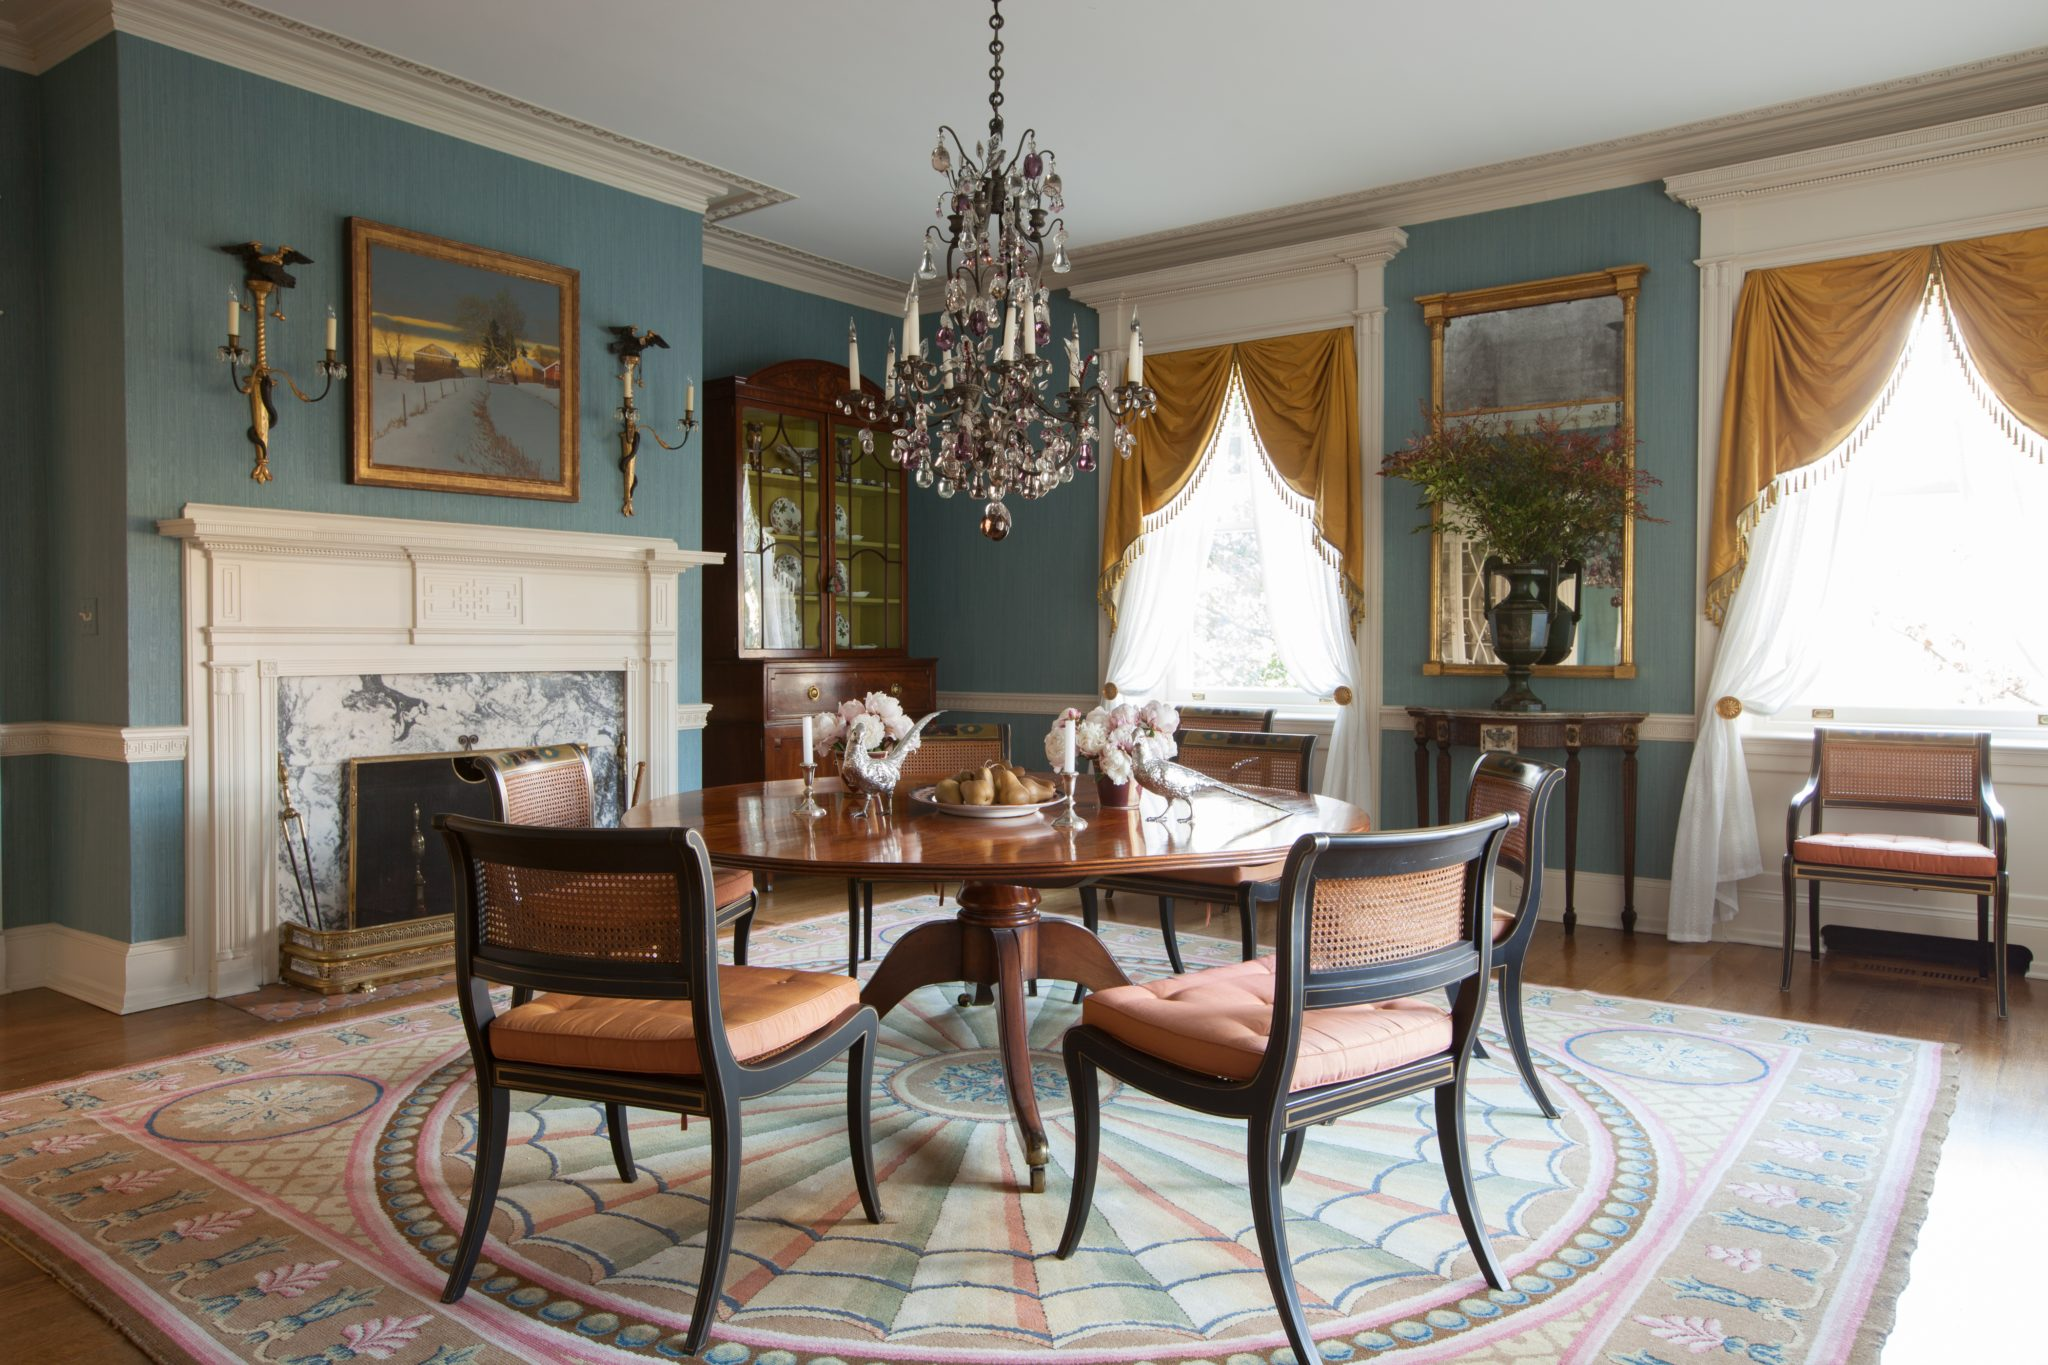 Centreville Delaware House: Dining Room by Brockschmidt & Coleman, LLC